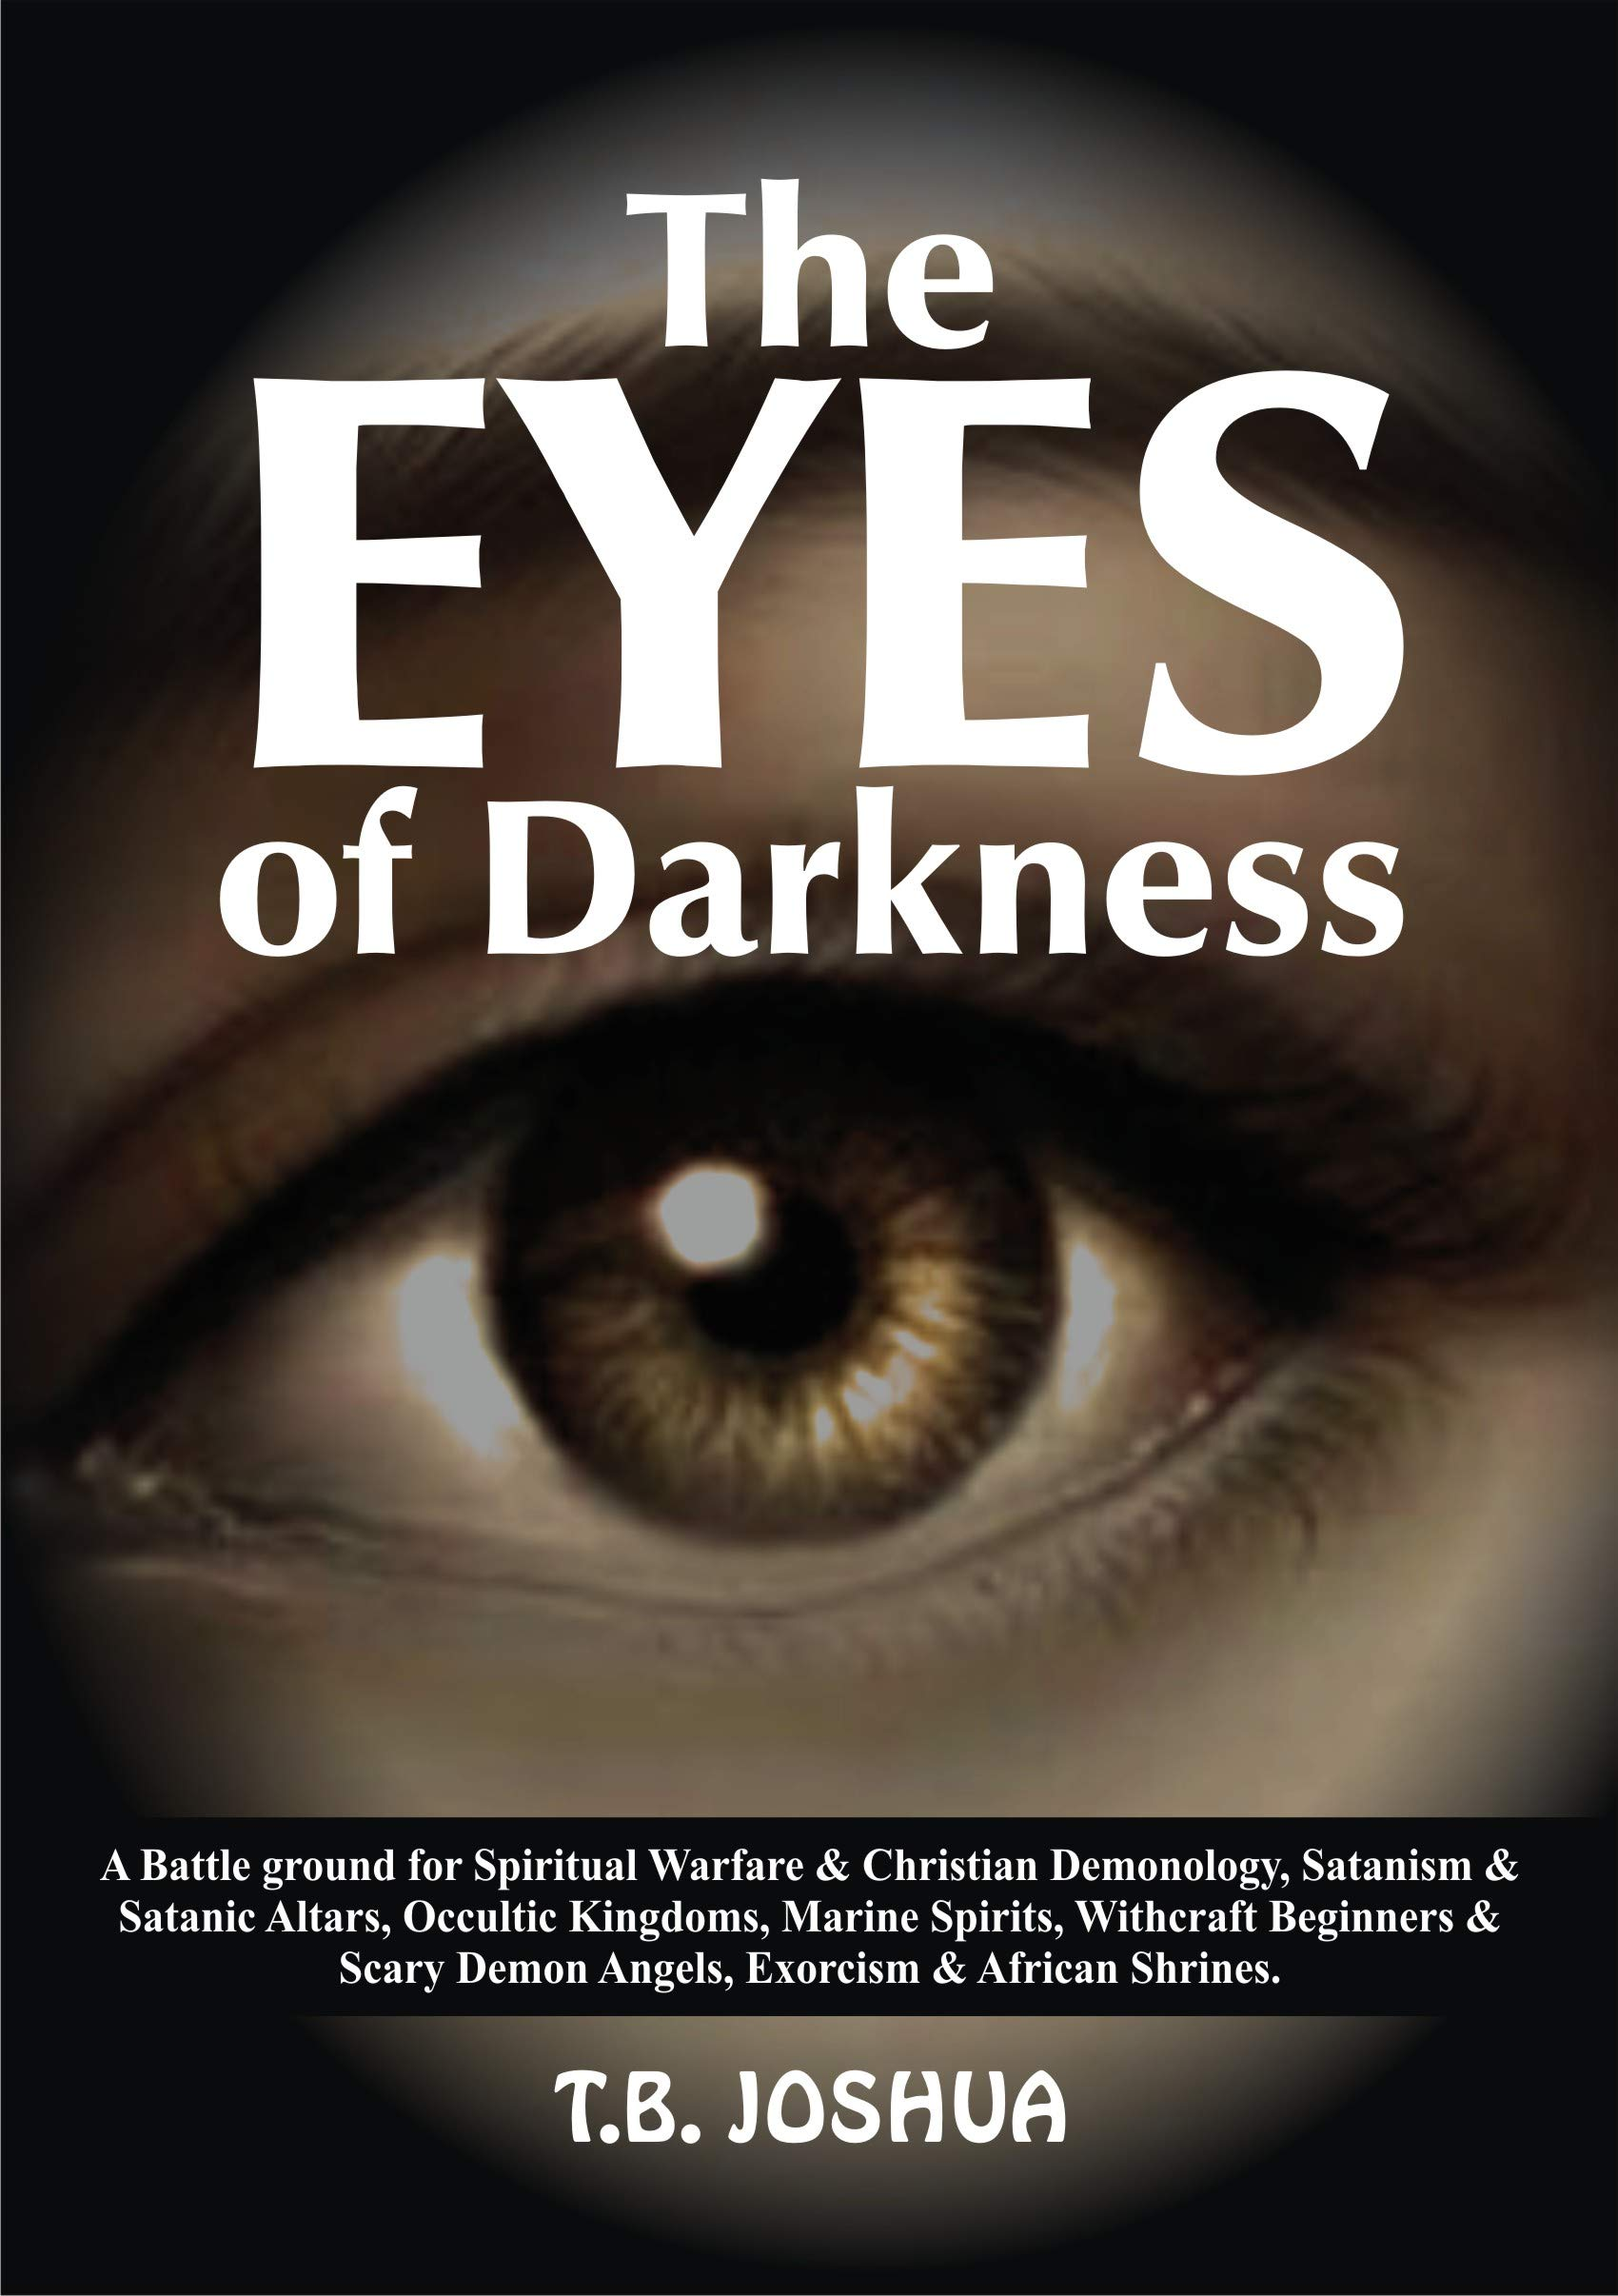 THE EYES OF DARKNESS: A Battle For Spiritual Warfare & Christian Demonology, Satanism & Satanic Altars, Occultic Kingdoms, Marine Spirits, Witchcraft Beginners & Scary Demon Angels, Exorcism & Afric